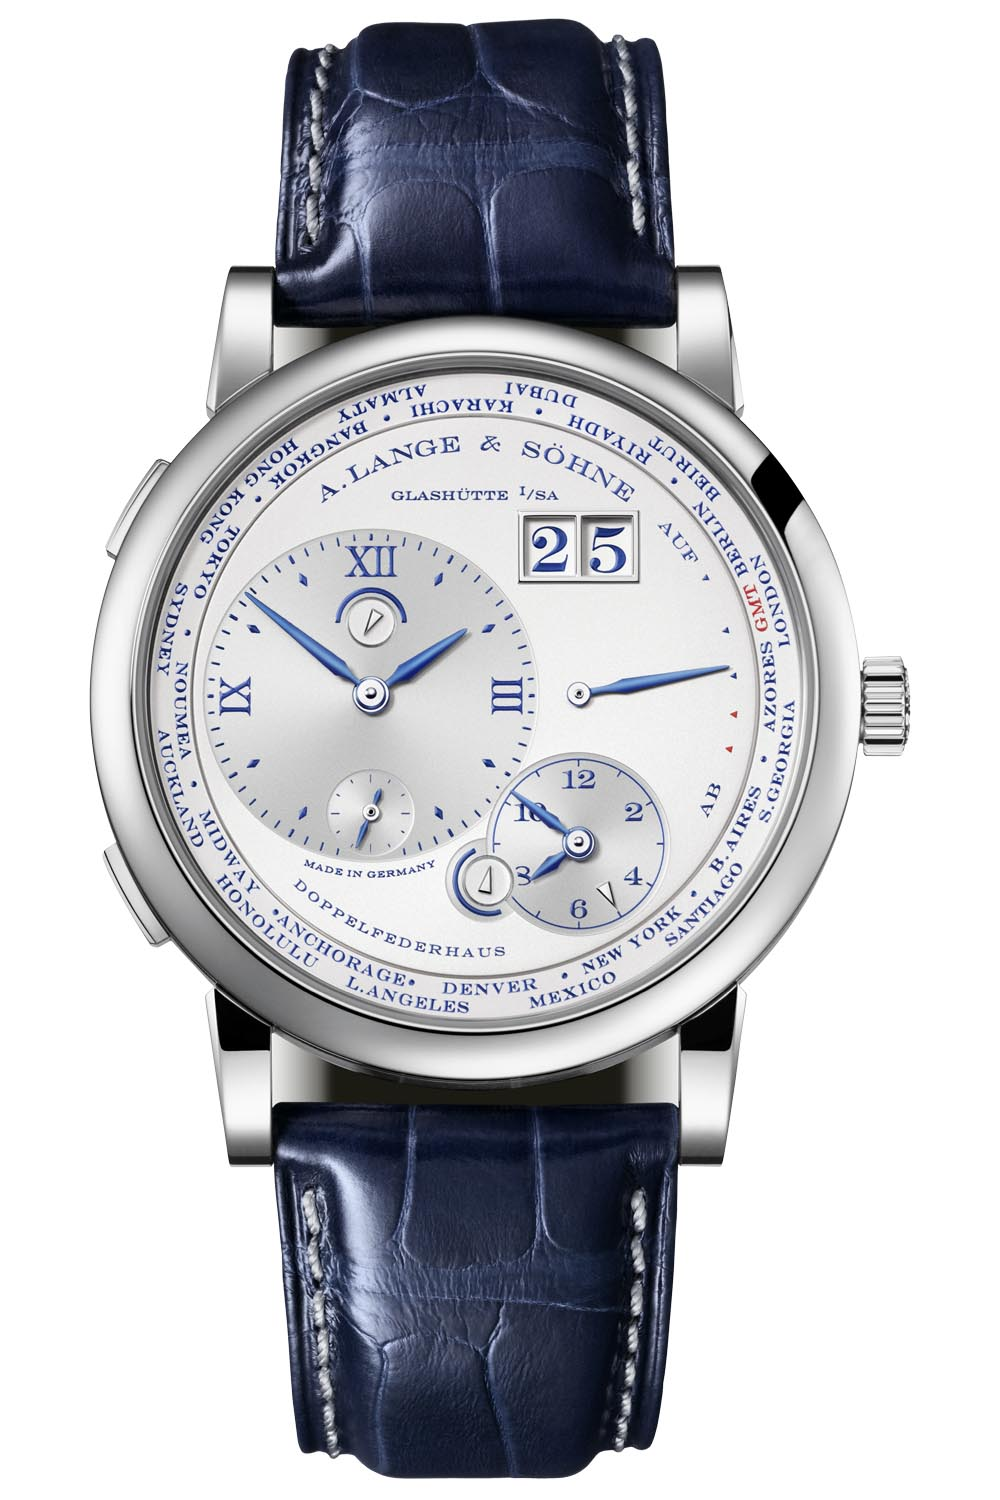 A. Lange & Söhne Lange 1 Time Zone 25th Anniversary